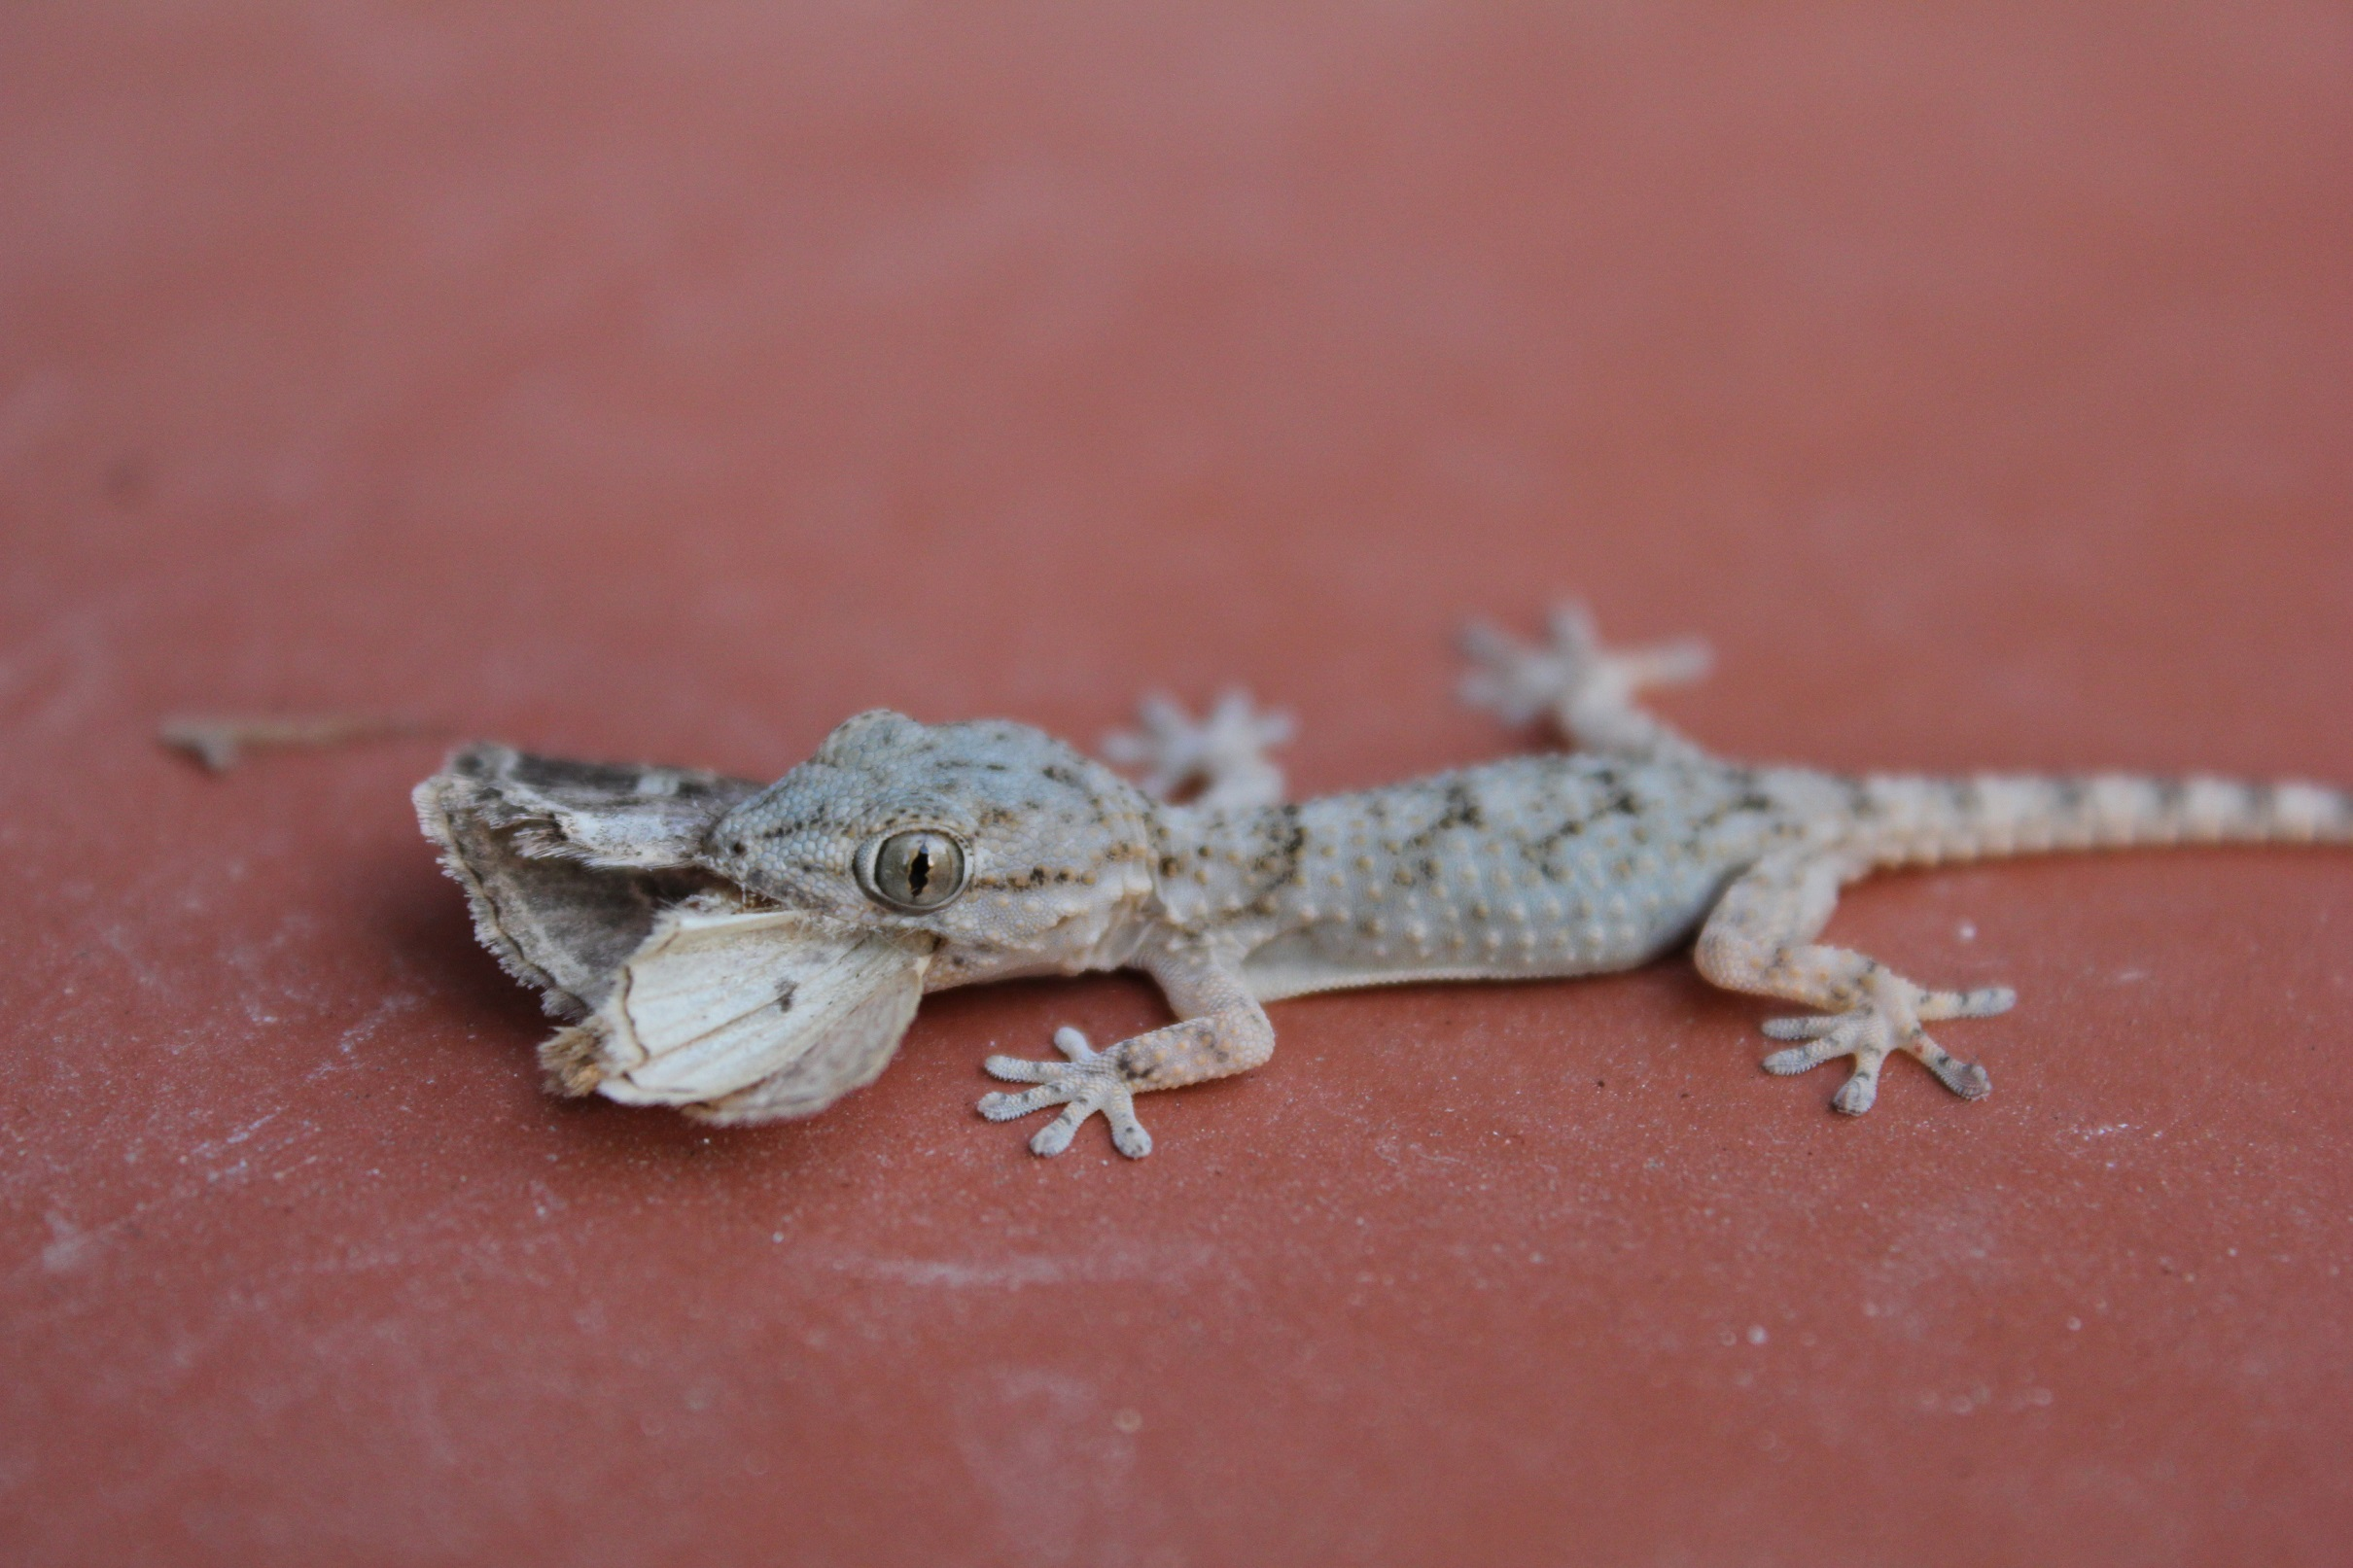 a frequent visitor to our patio Gecko